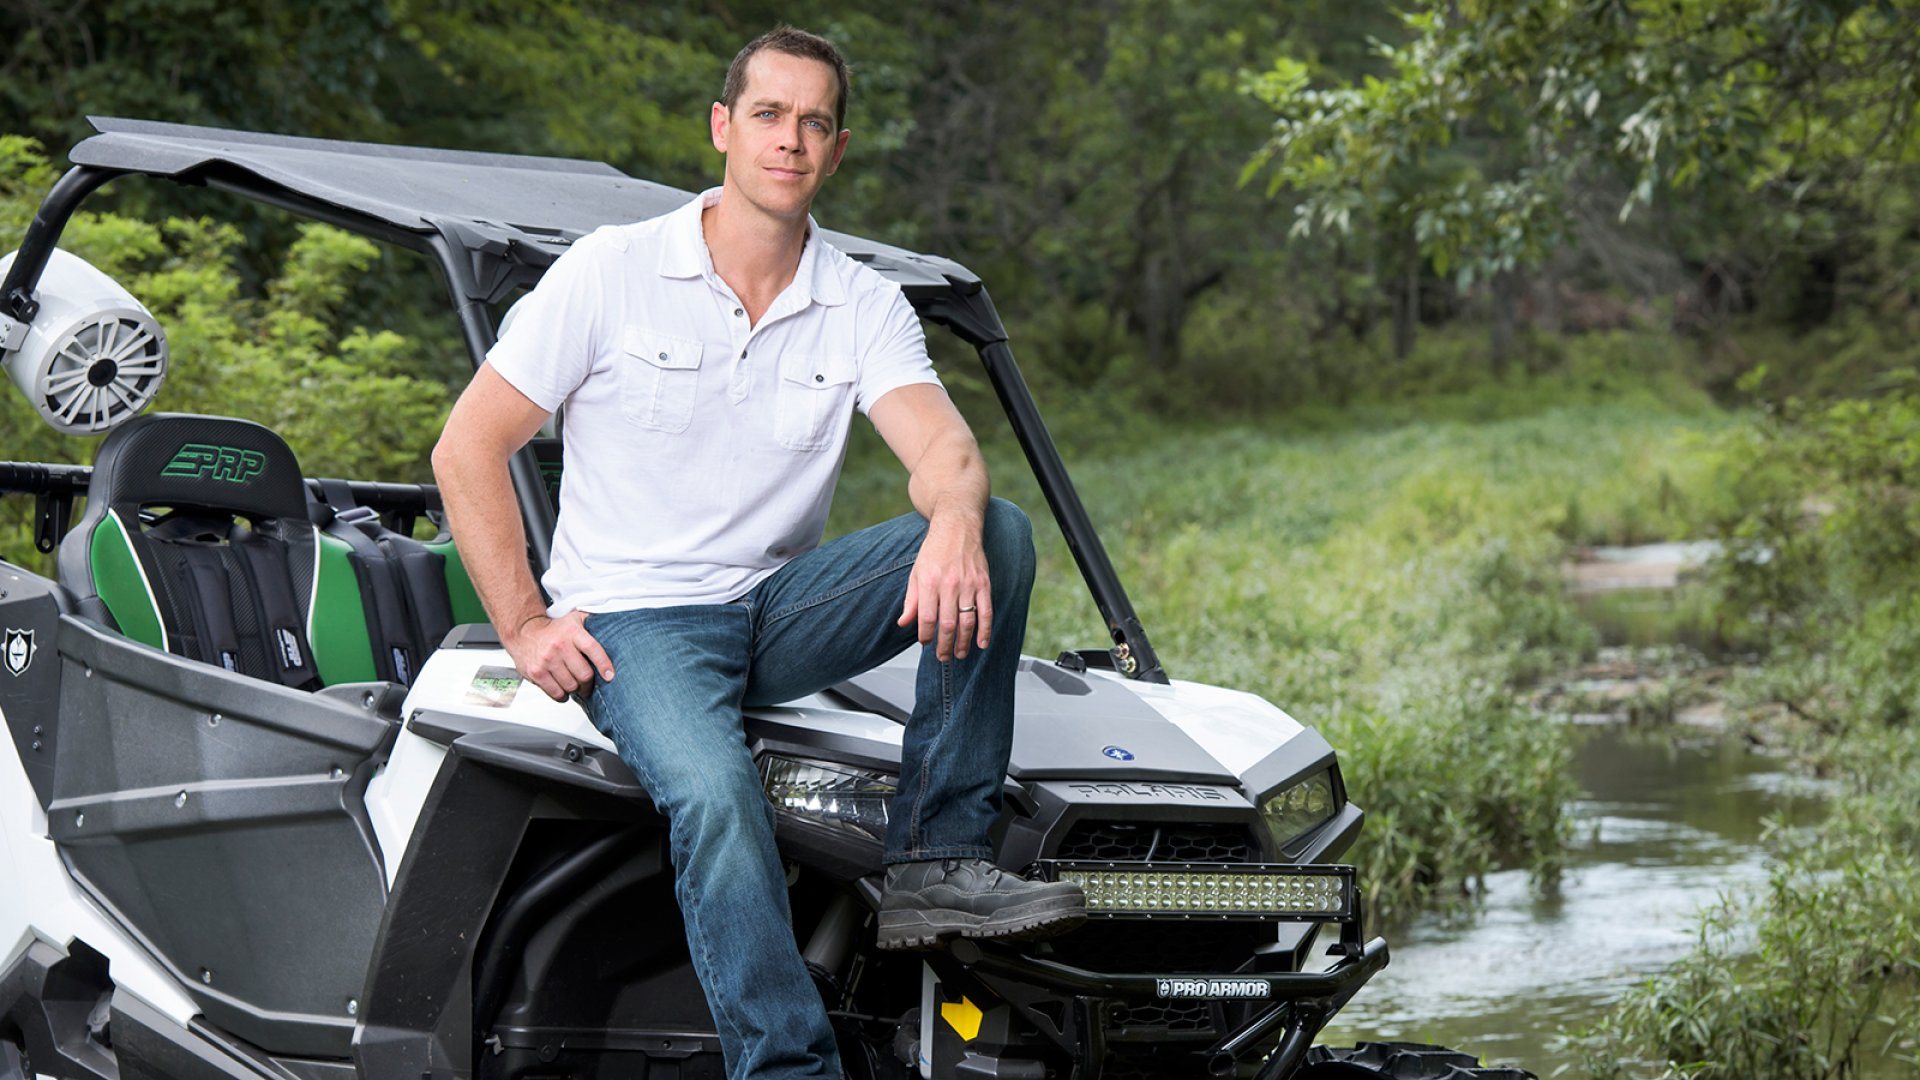 Scott Harper, founder of Side by Side Stuff (No. 314; $6.8 million 2014 annual revenue), turned his passion for off-road UTVs, also known as side by sides, into a fast-growing retailer of accessories.